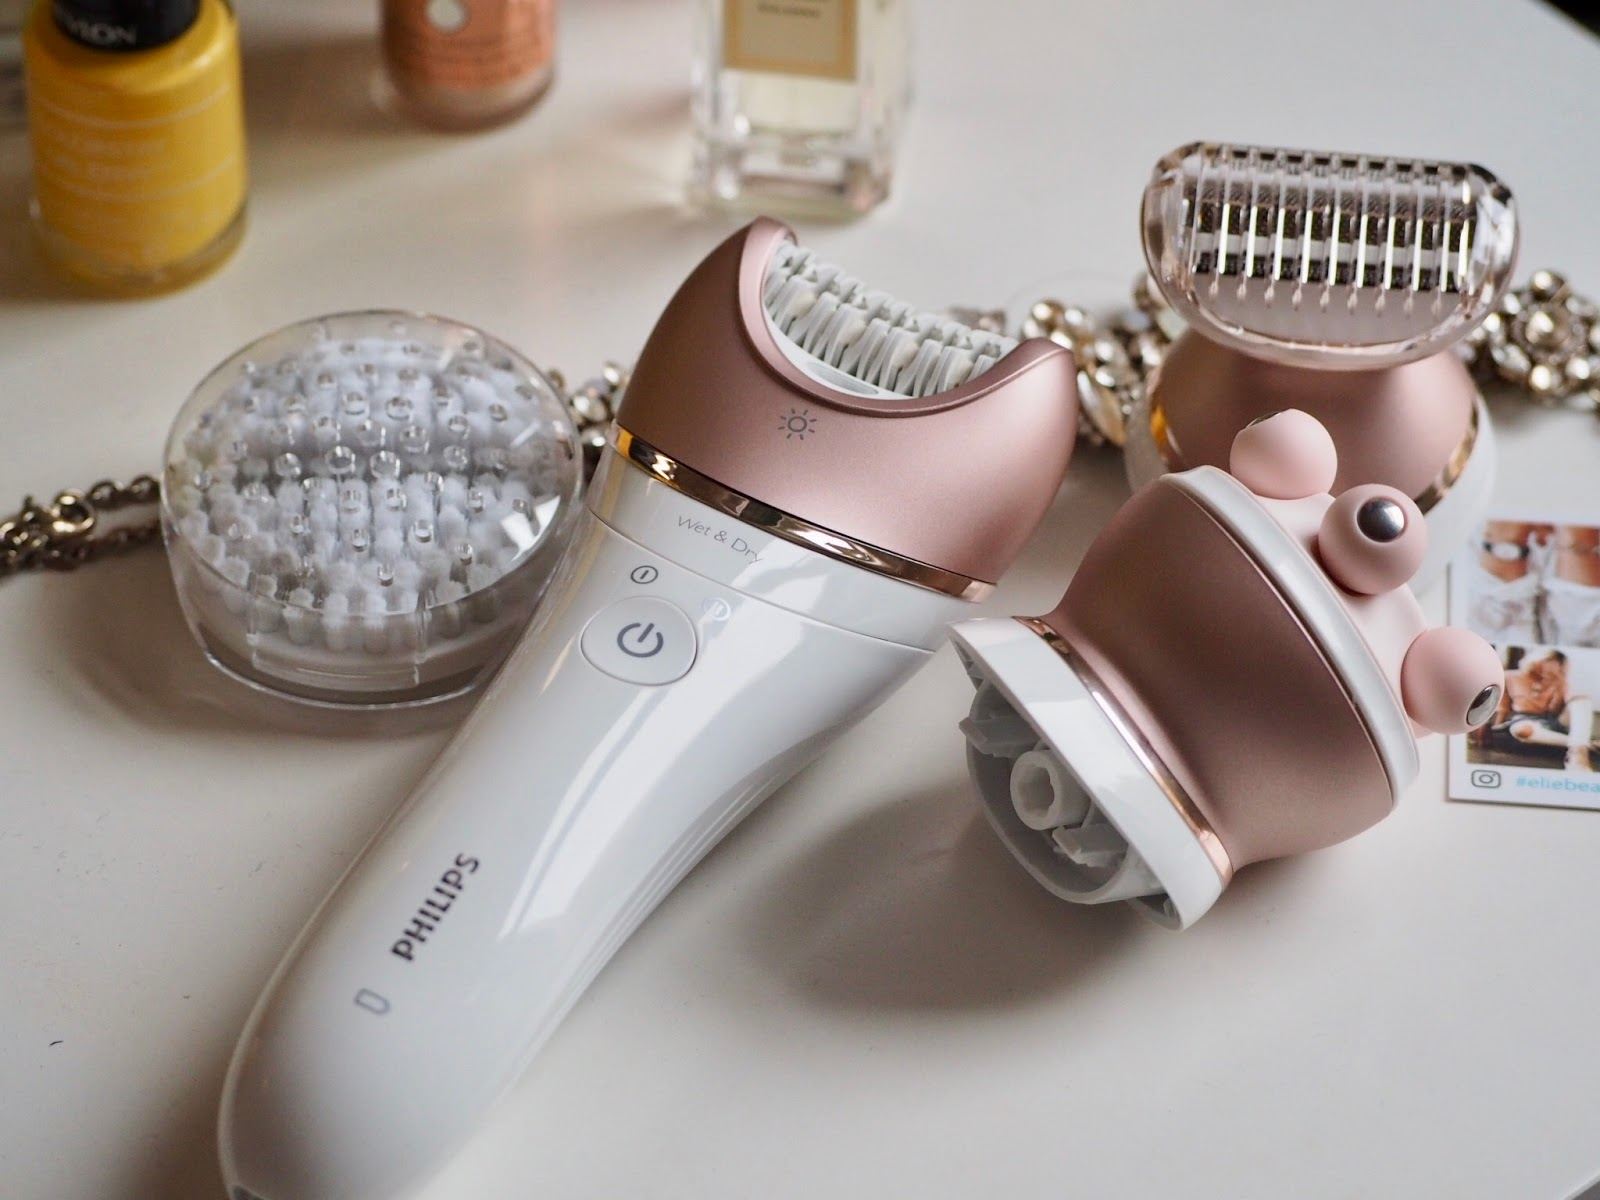 Philips Satinelle Prestige Wet & Dry Epilator*